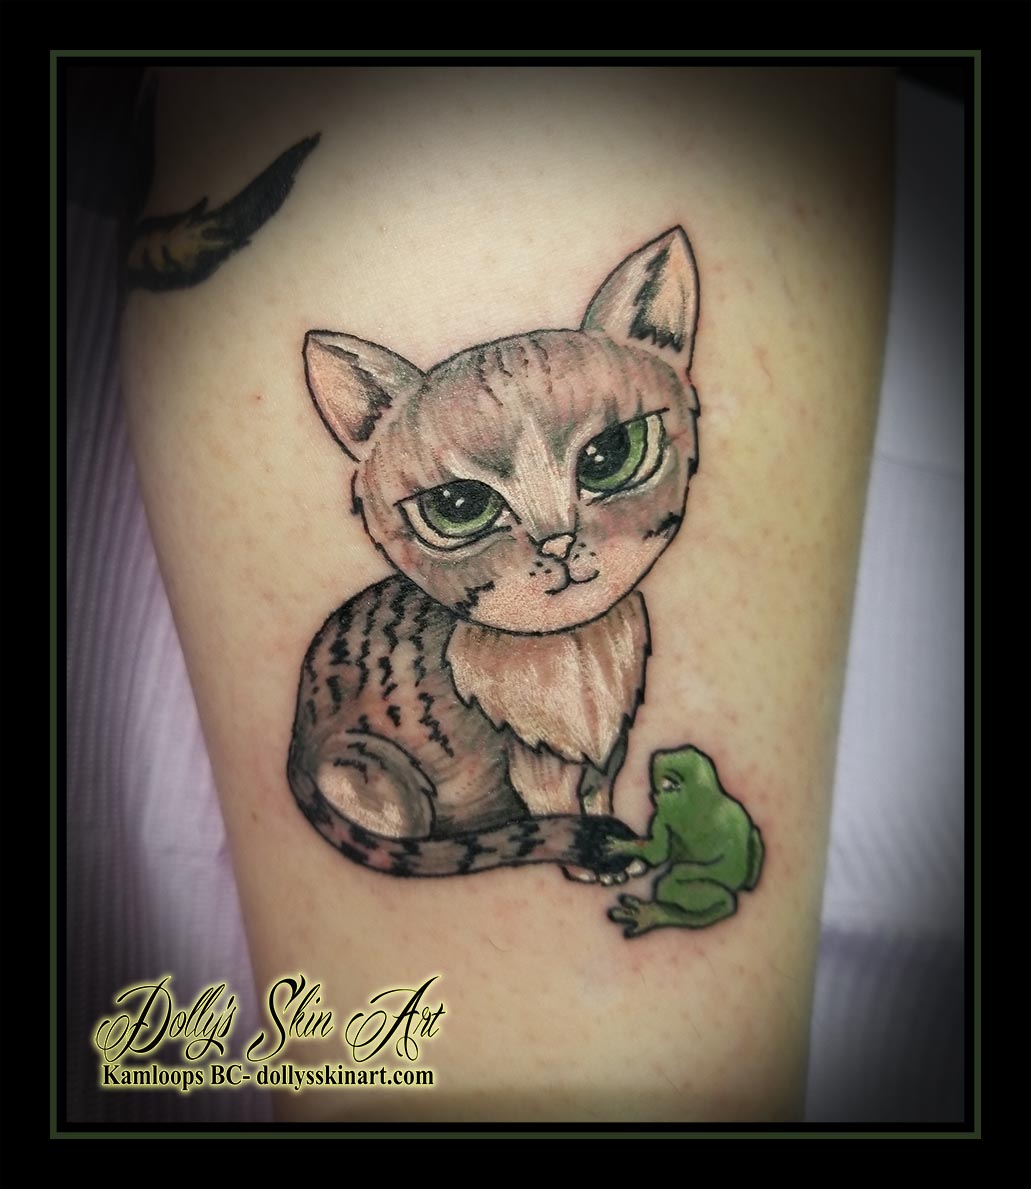 cat tattoo cartoon kitten frog colour green brown grey black tattoo kamloops dolly's skin art